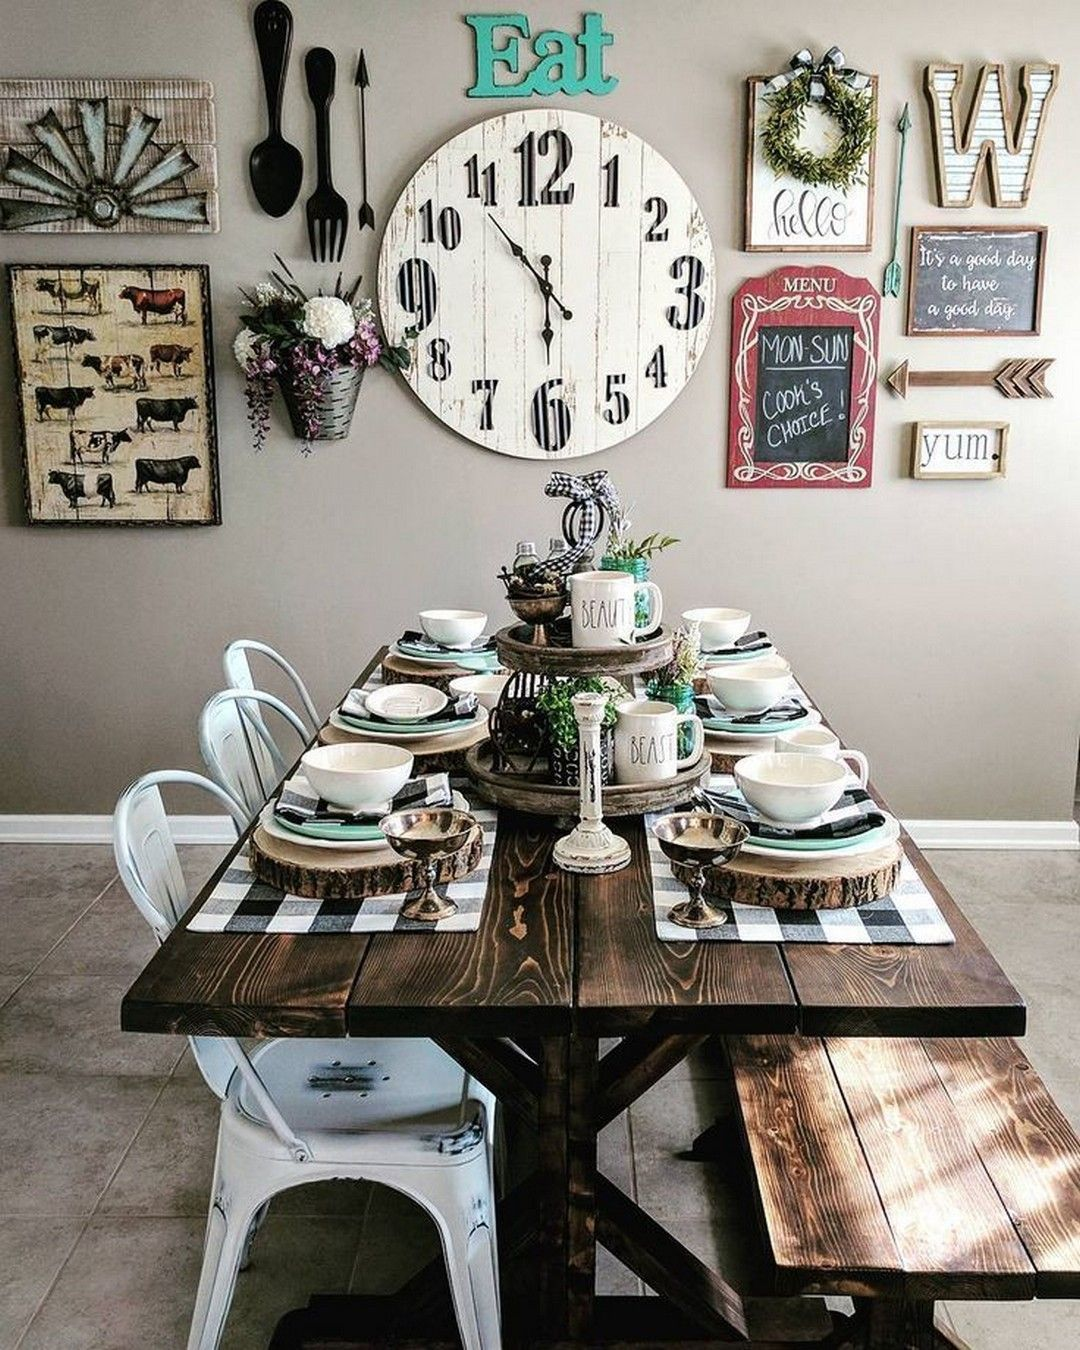 24 Nice Ideas Rustic Wall Decorating For The Kitchen Stick To On These Items Only In Orde Farmhouse Table Plans Farmhouse Dining Rooms Decor Dinning Room Decor